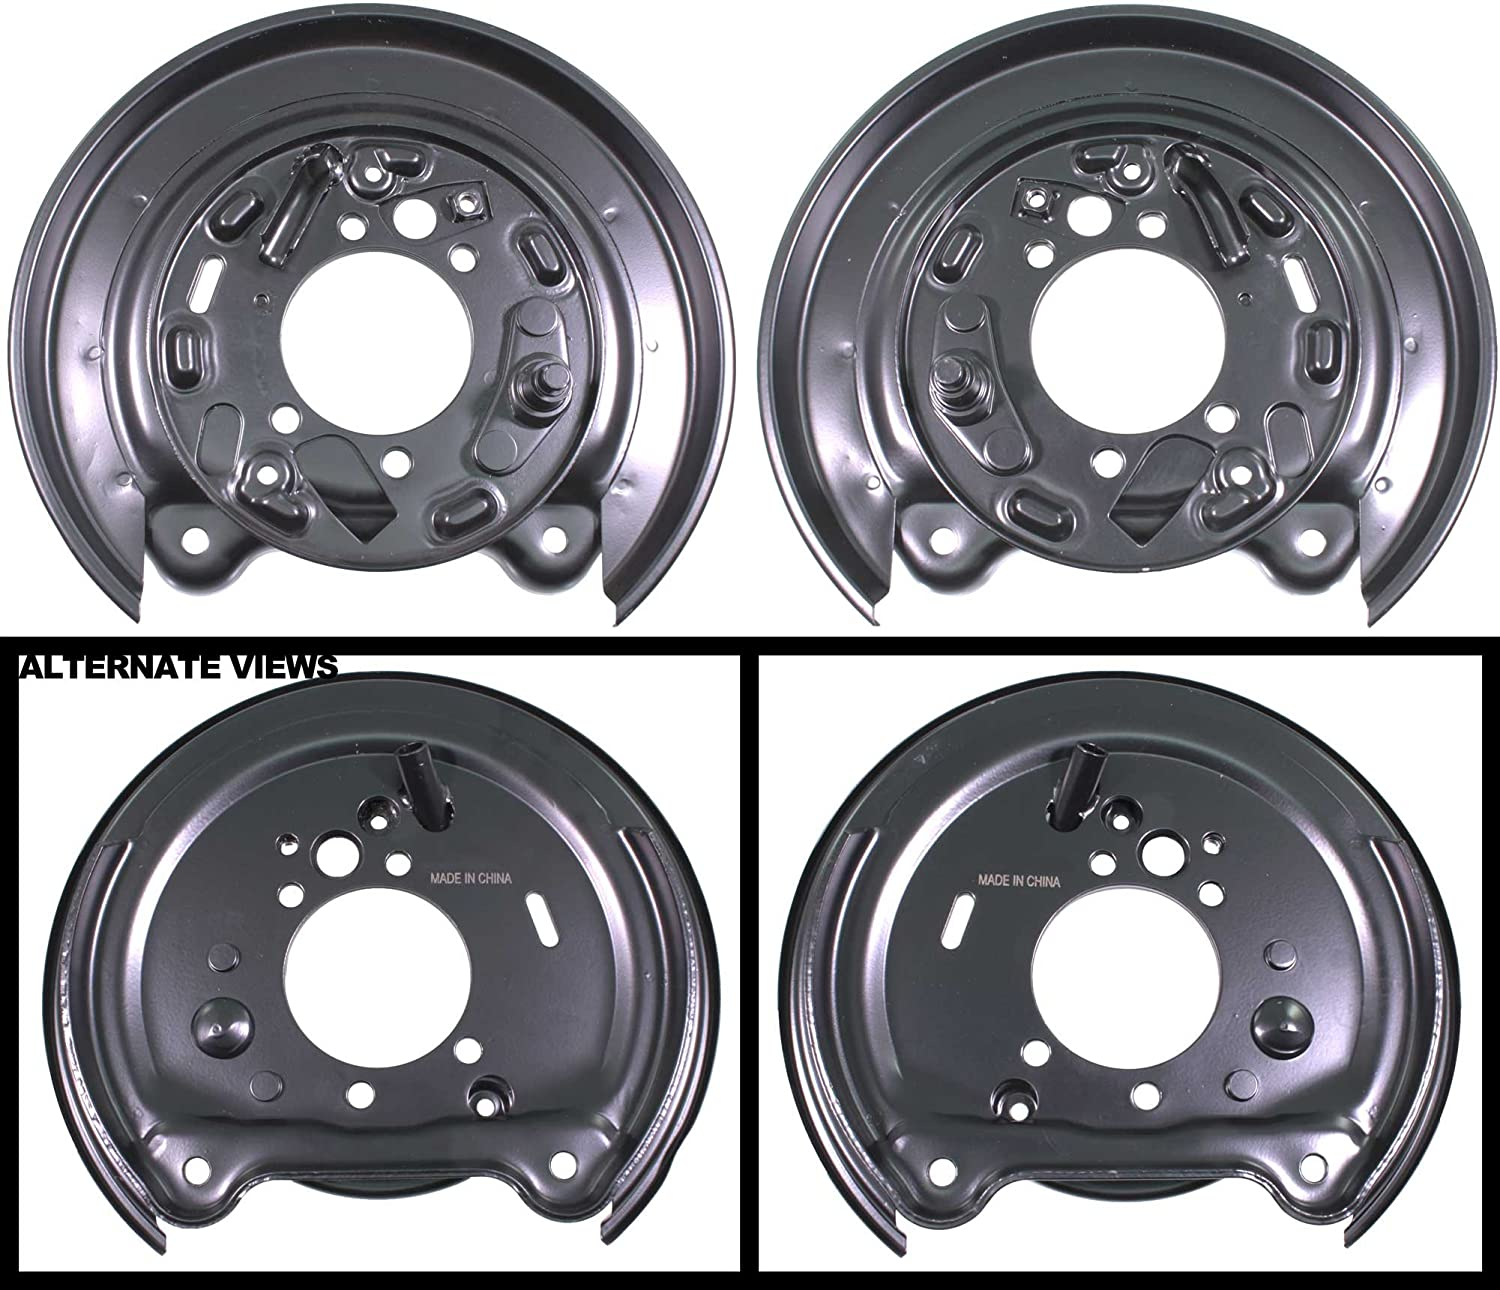 APDTY 035486 Disc Brake Dust Shield Backing Plate Set Fits Rear Left & Right 1998-2008 Subaru Forester/1993-2007 Impreza/ 1992-1997 Legacy (Rear Disc Brakes & 4-Wheel ABS ONLY) (Replaces 26255AA061)